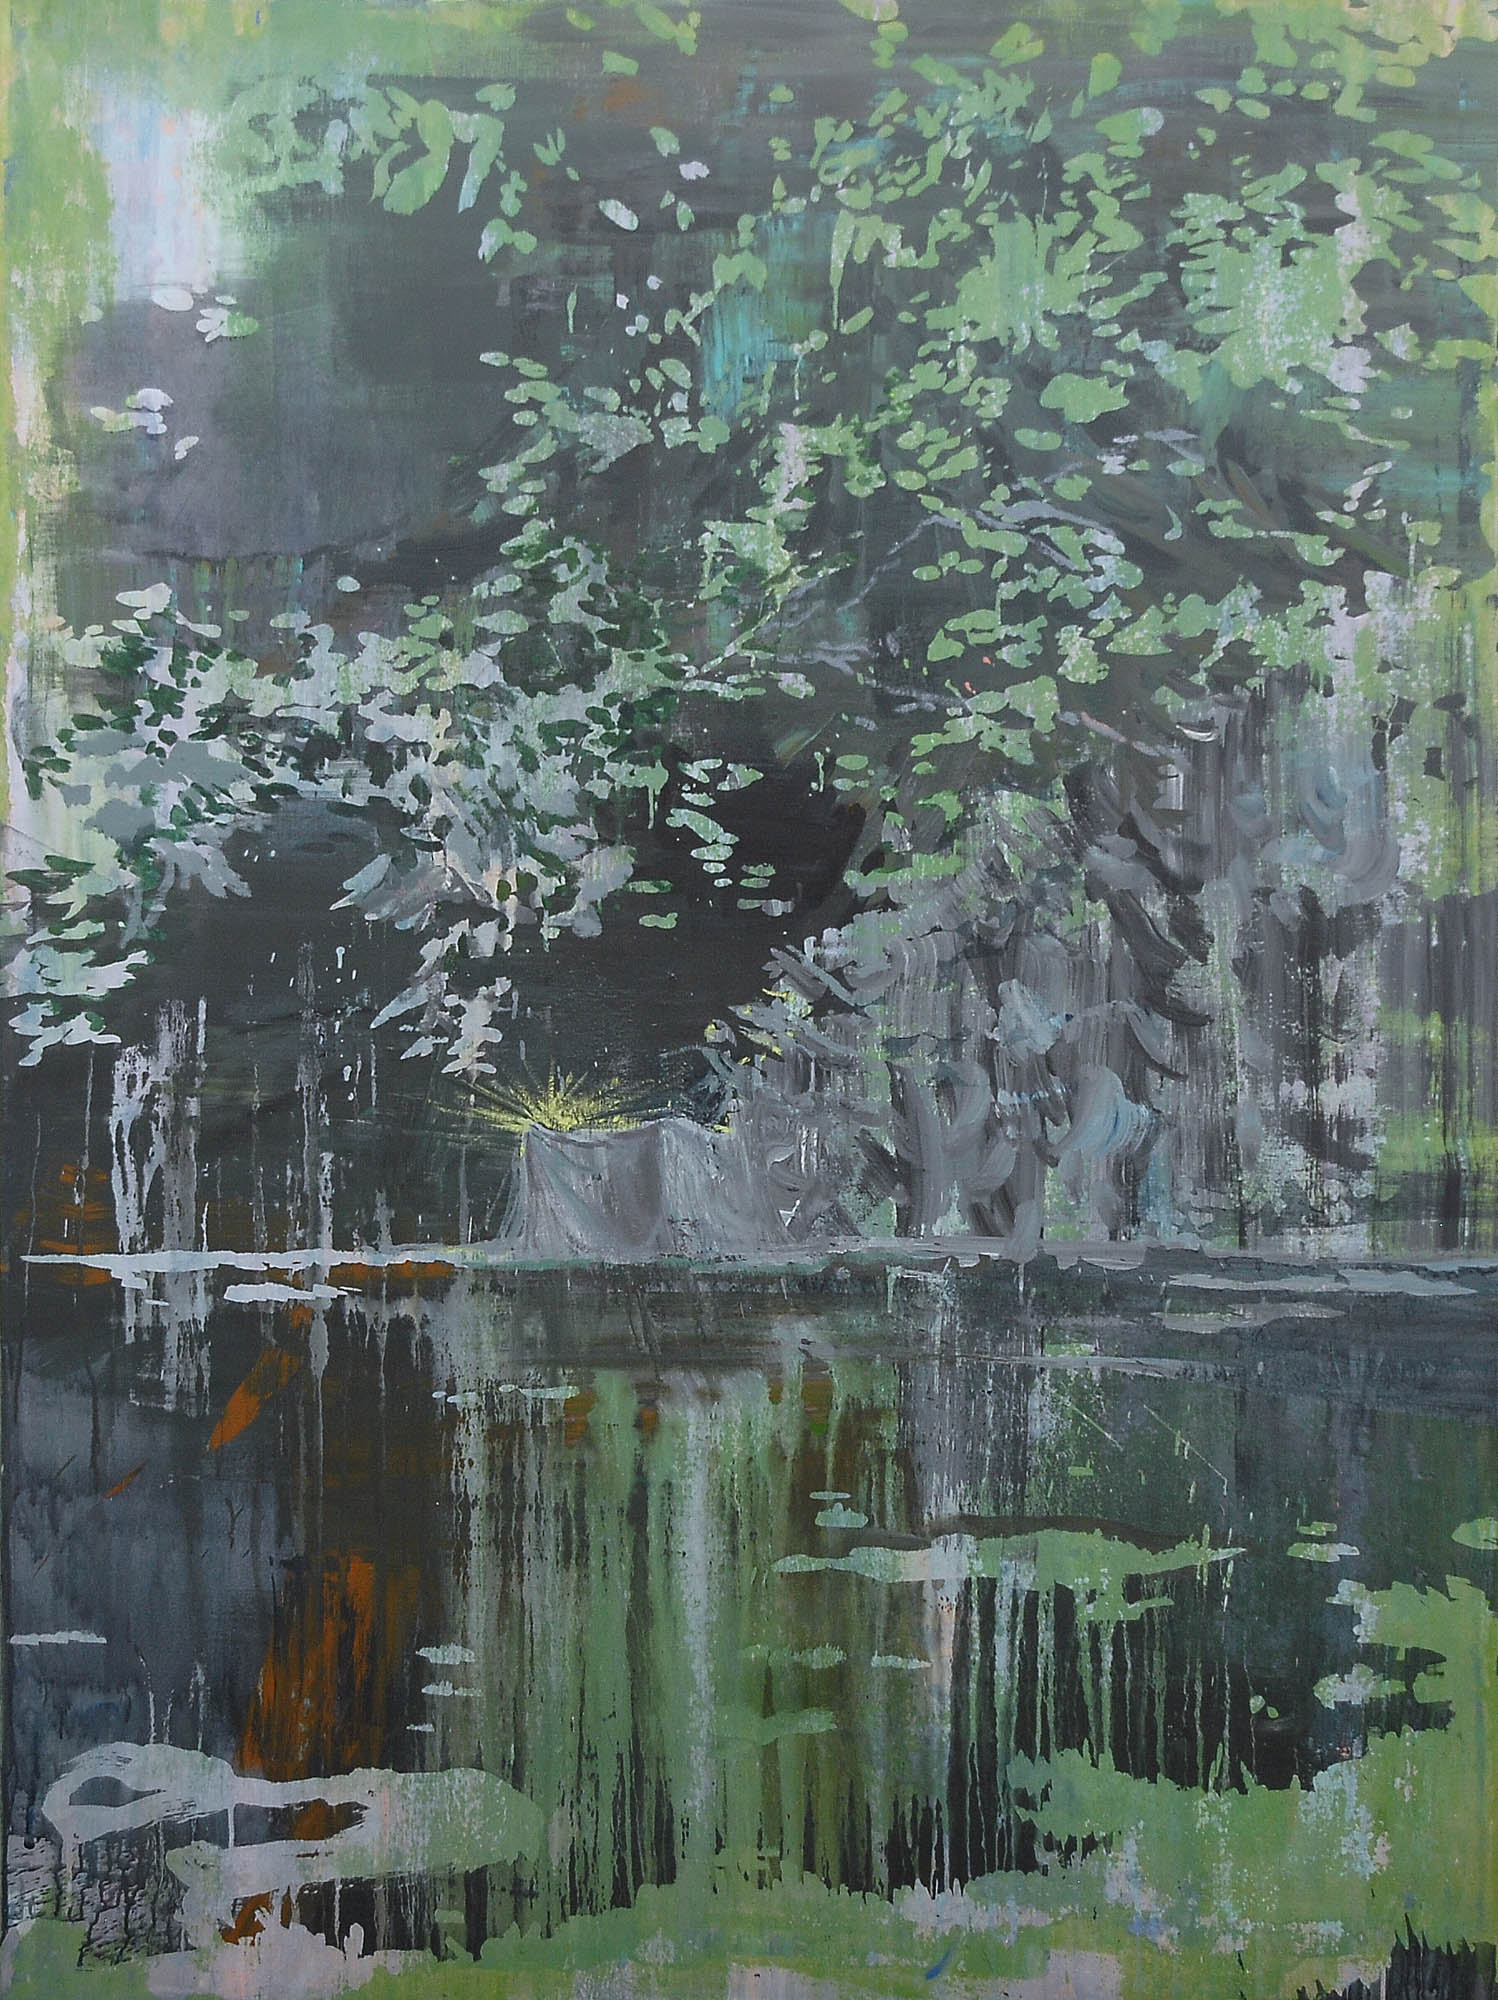 Lu Song 吕松, Home for the Homelss, 2015, Oil on canvas 布面油画, 200 x 150 cm